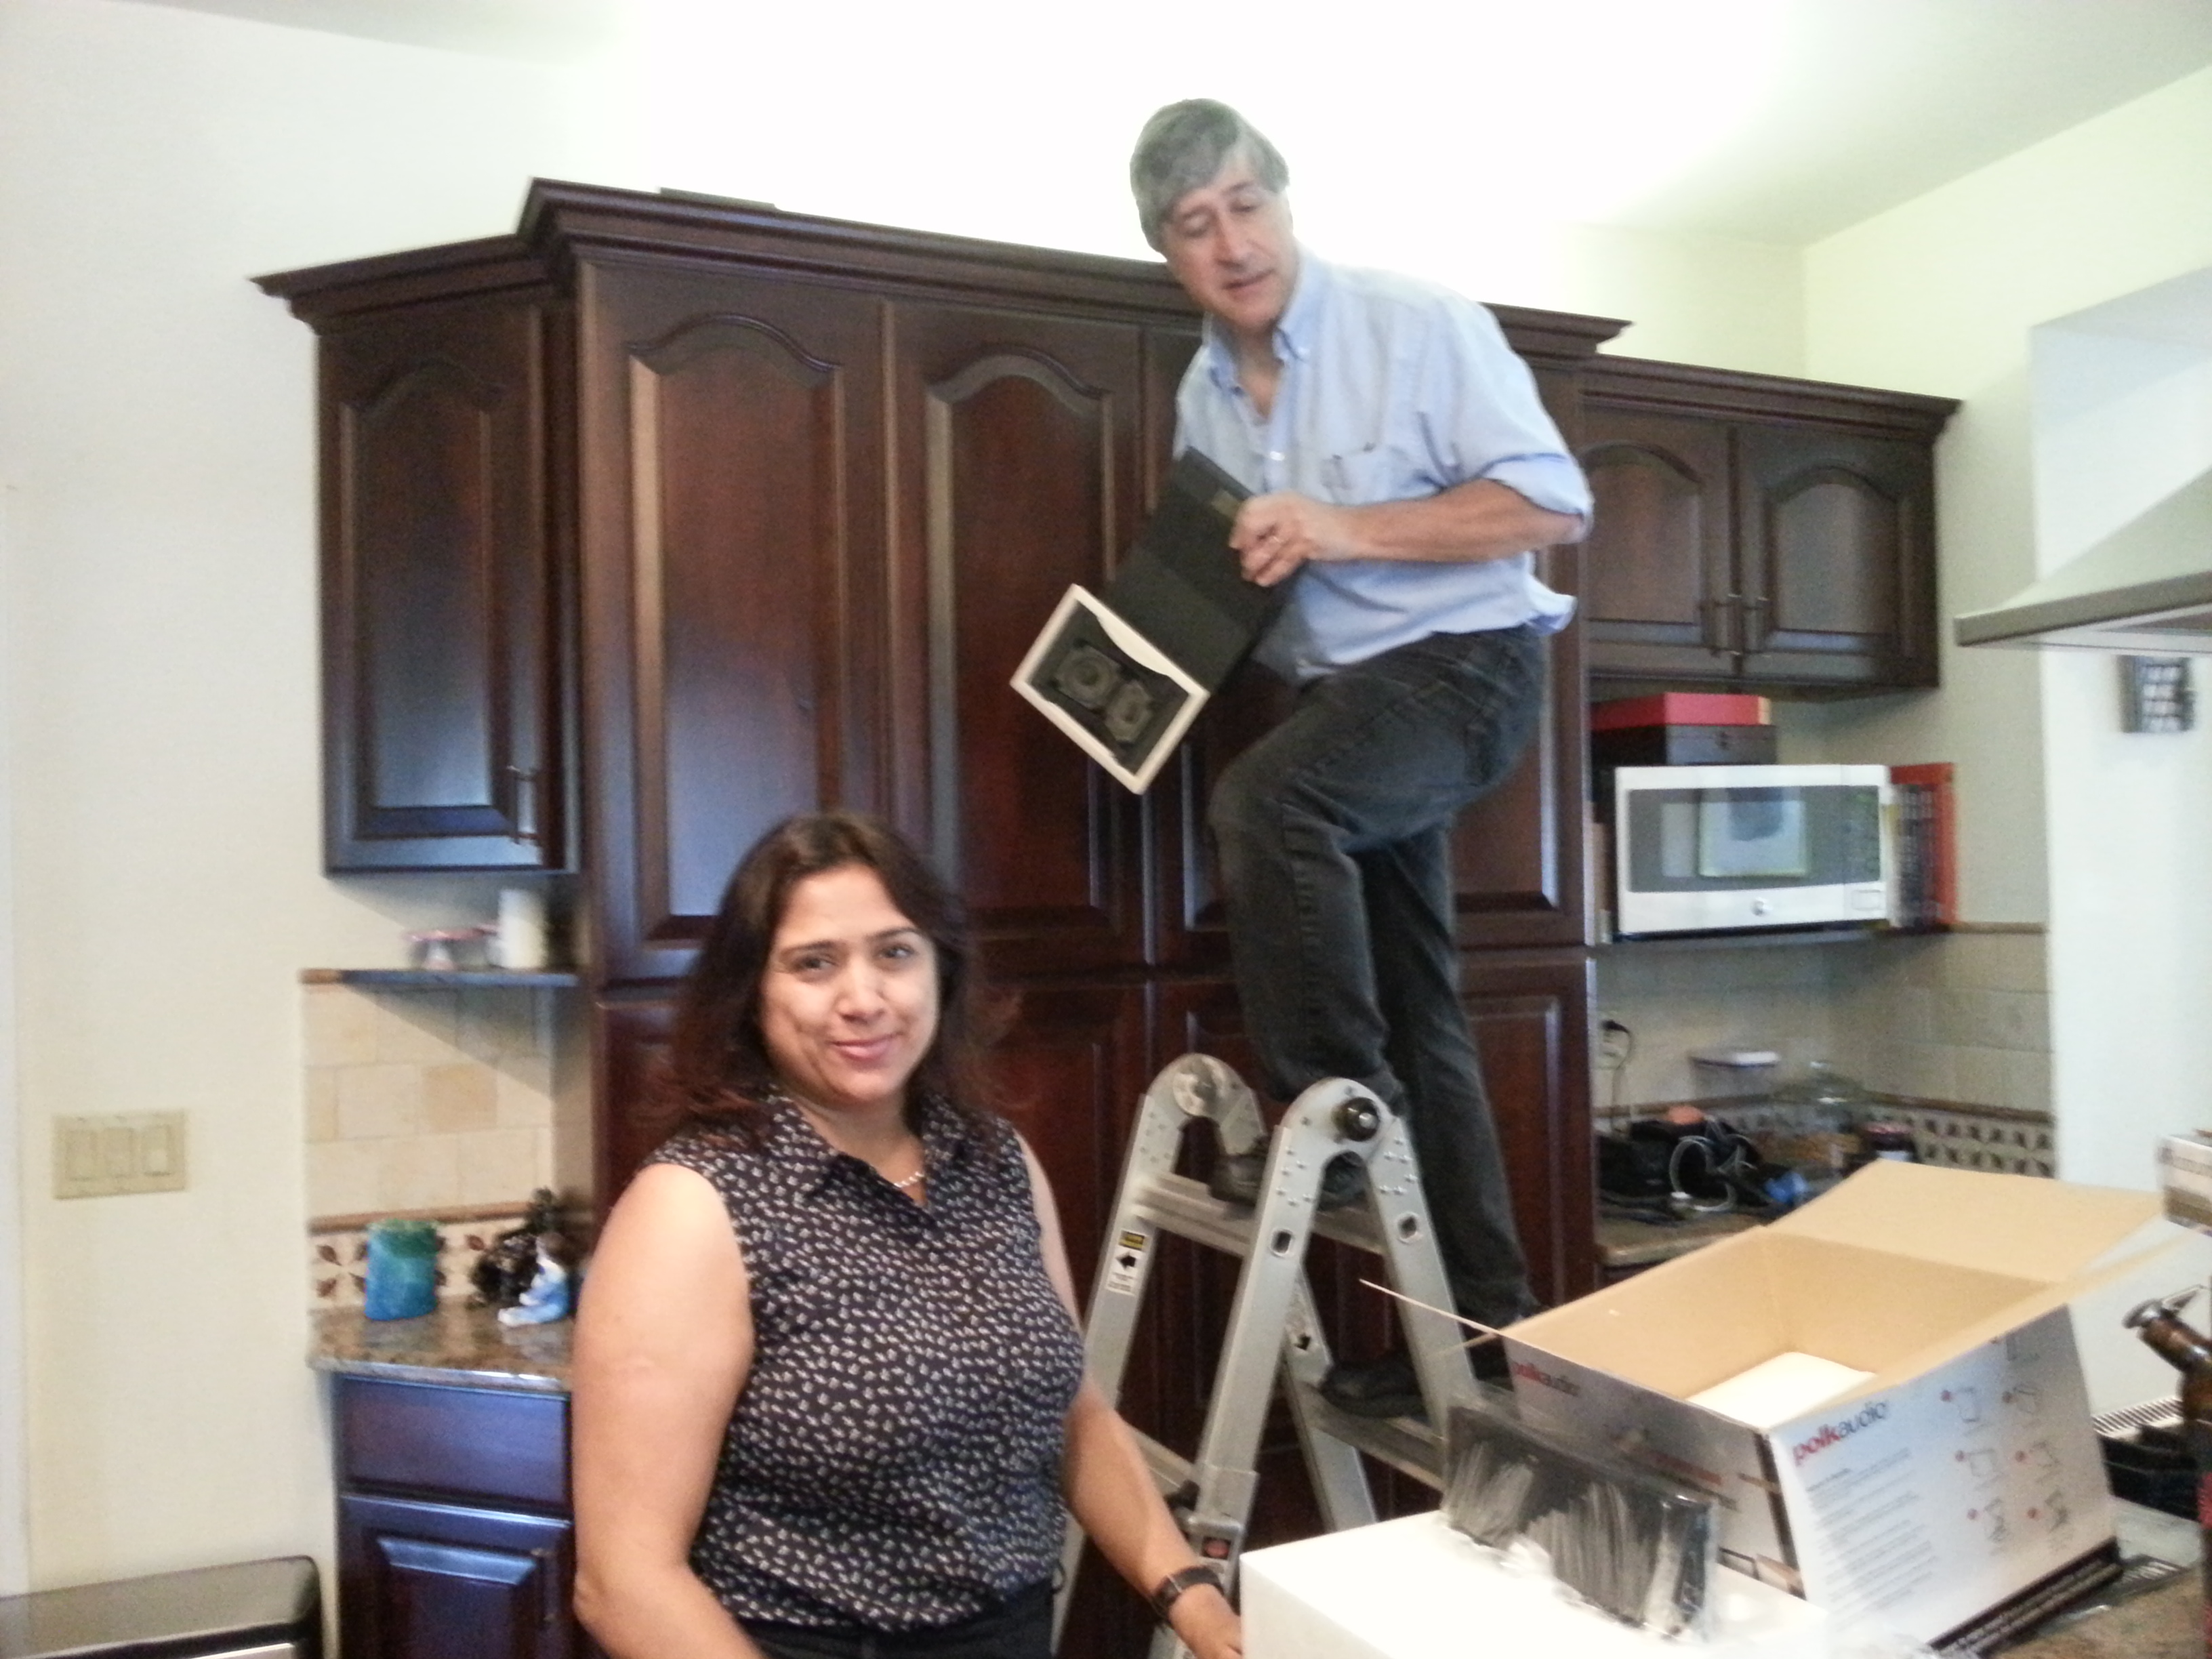 Genial Home Audio Systems: Installing New Speakers In The Kitchen.